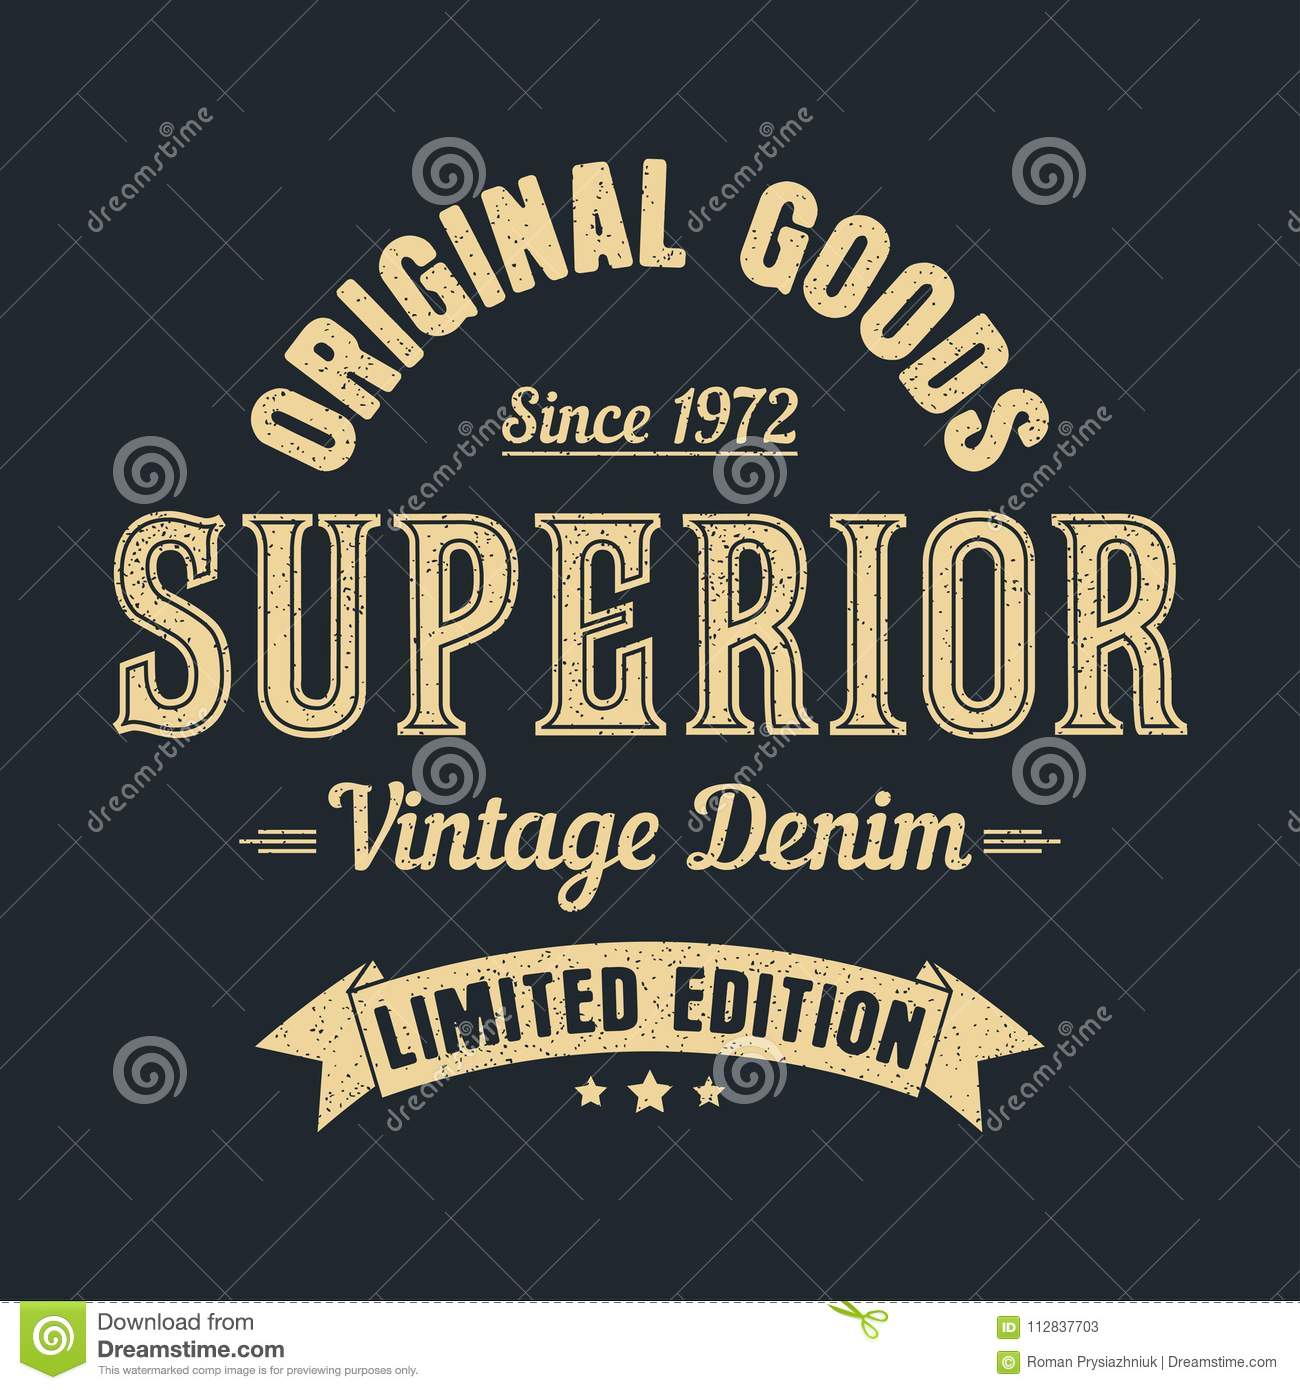 13b0fb7bc Superior denim, original goods graphic for t-shirt. Vintage clothes design  with grunge. Authentic apparel typography. Vector.